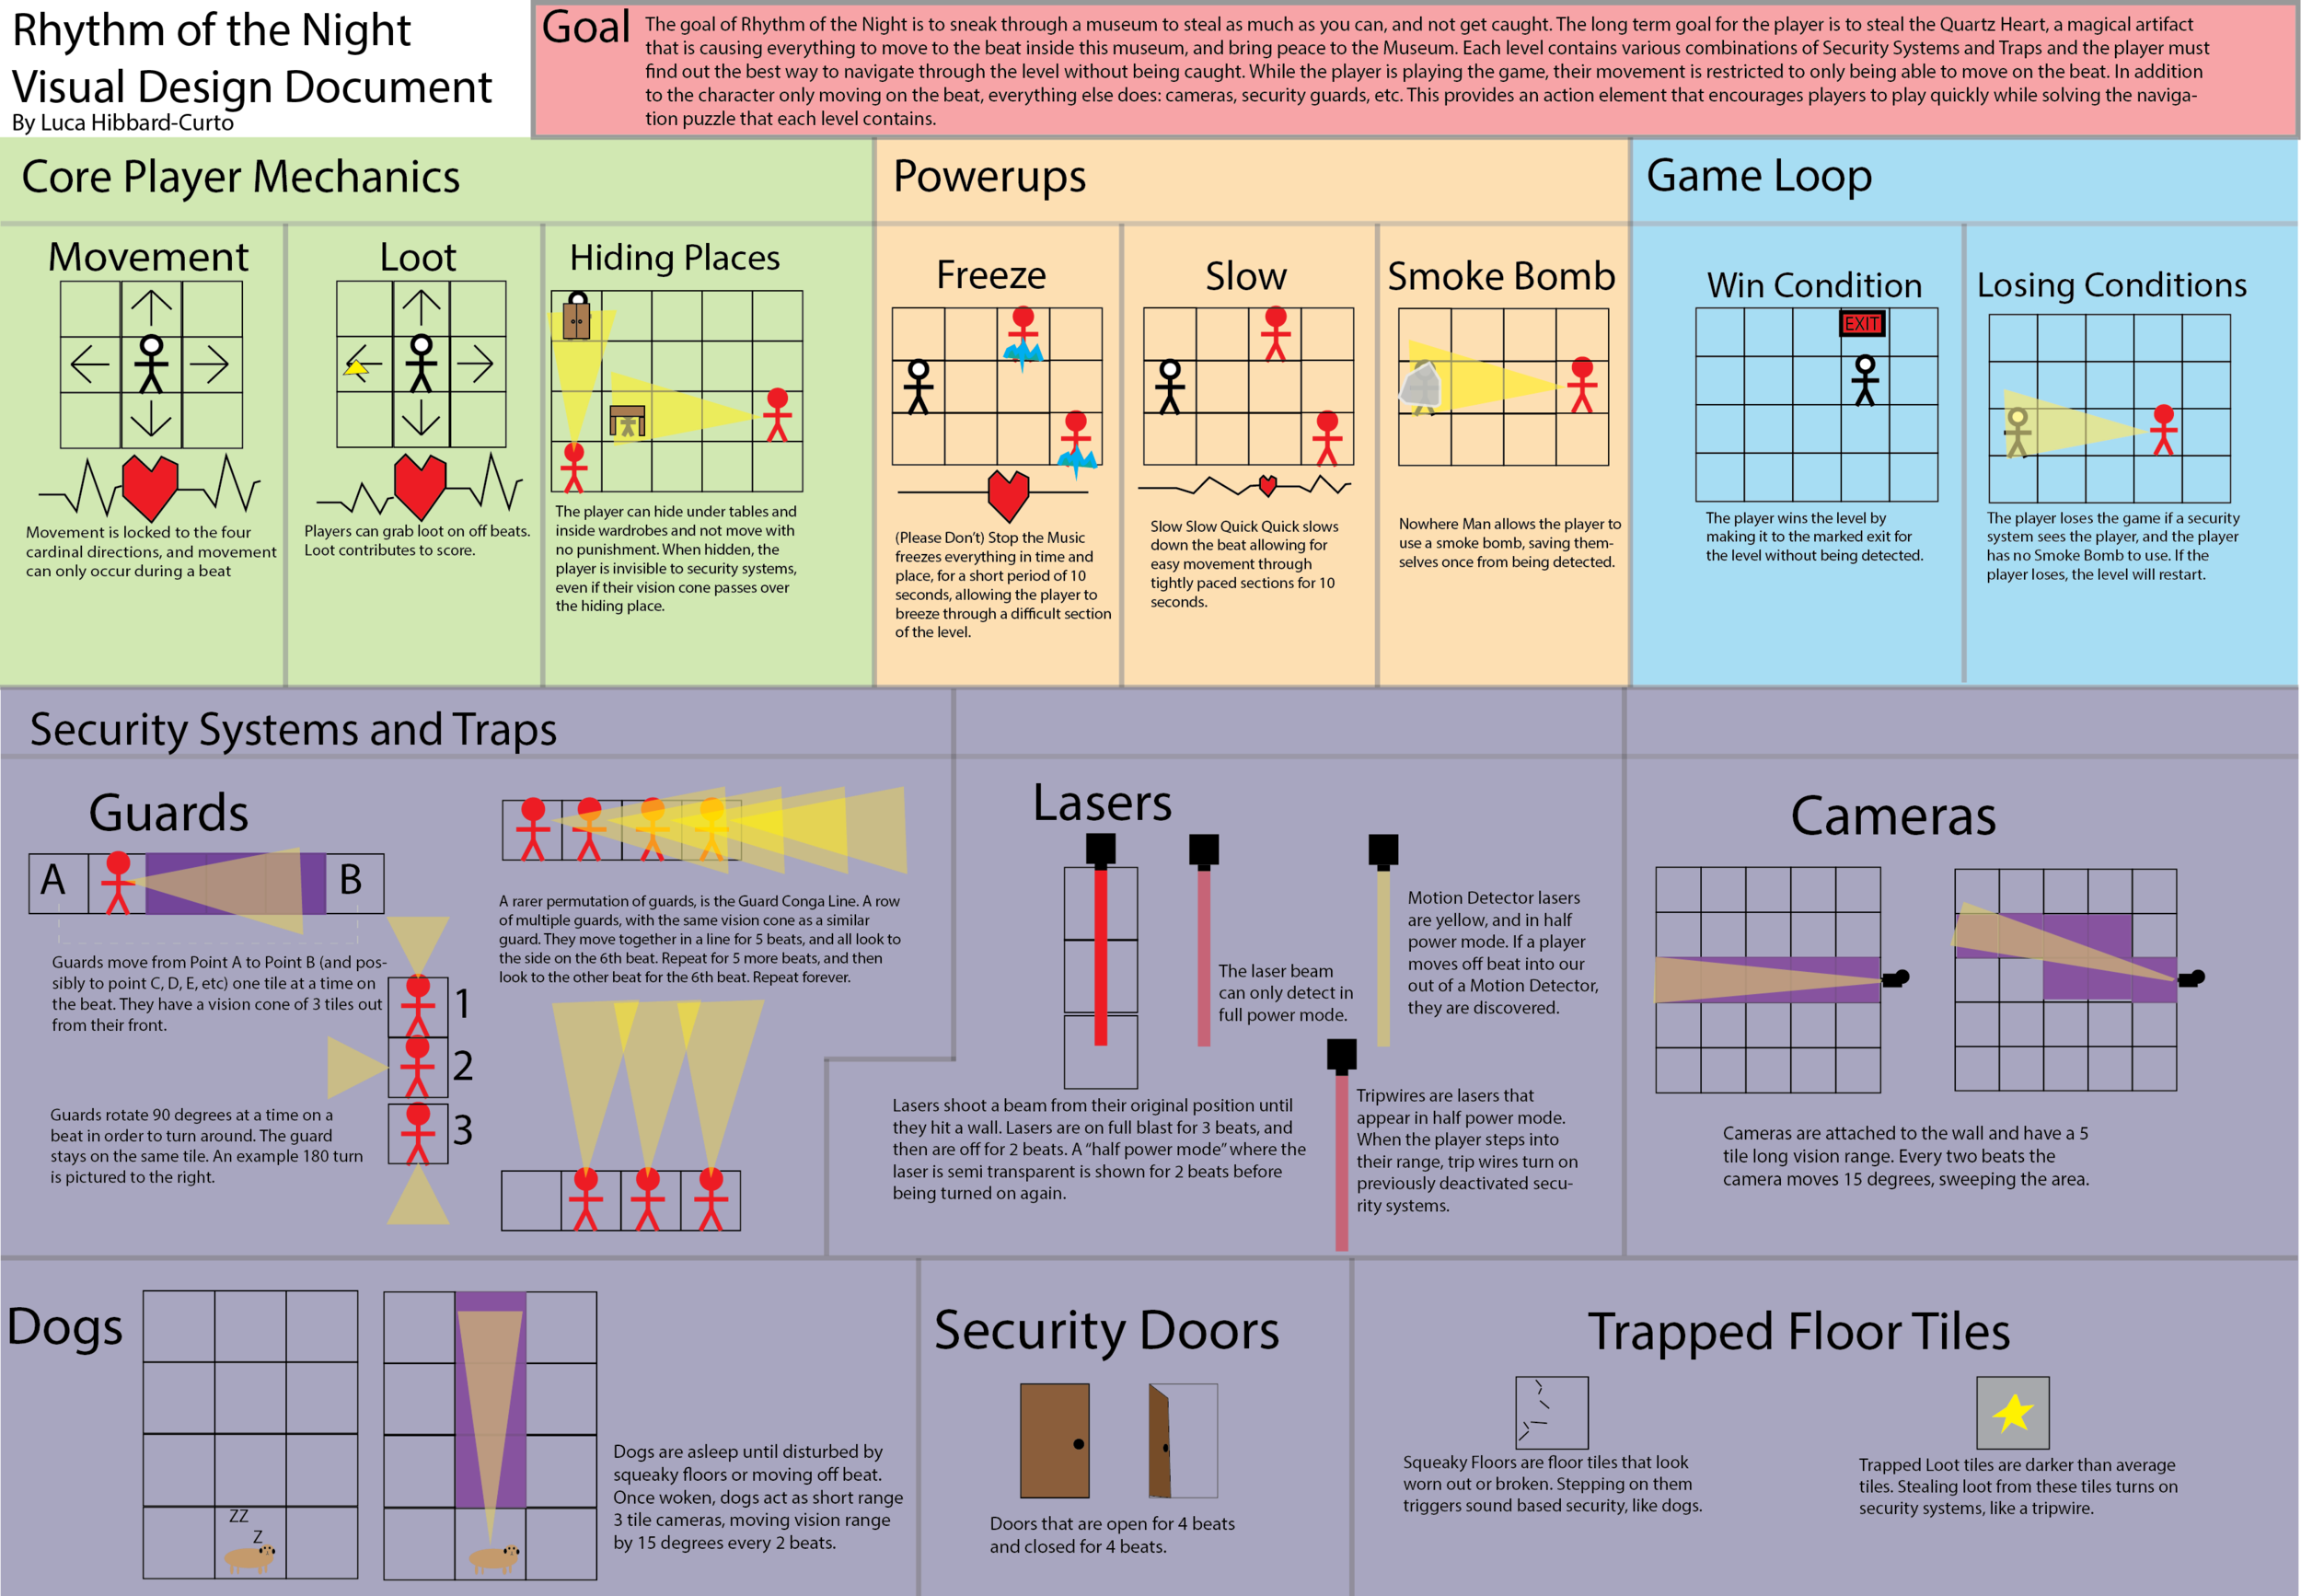 Lower quality version of the VDD. The full thing is a massive, scale-able PDF.